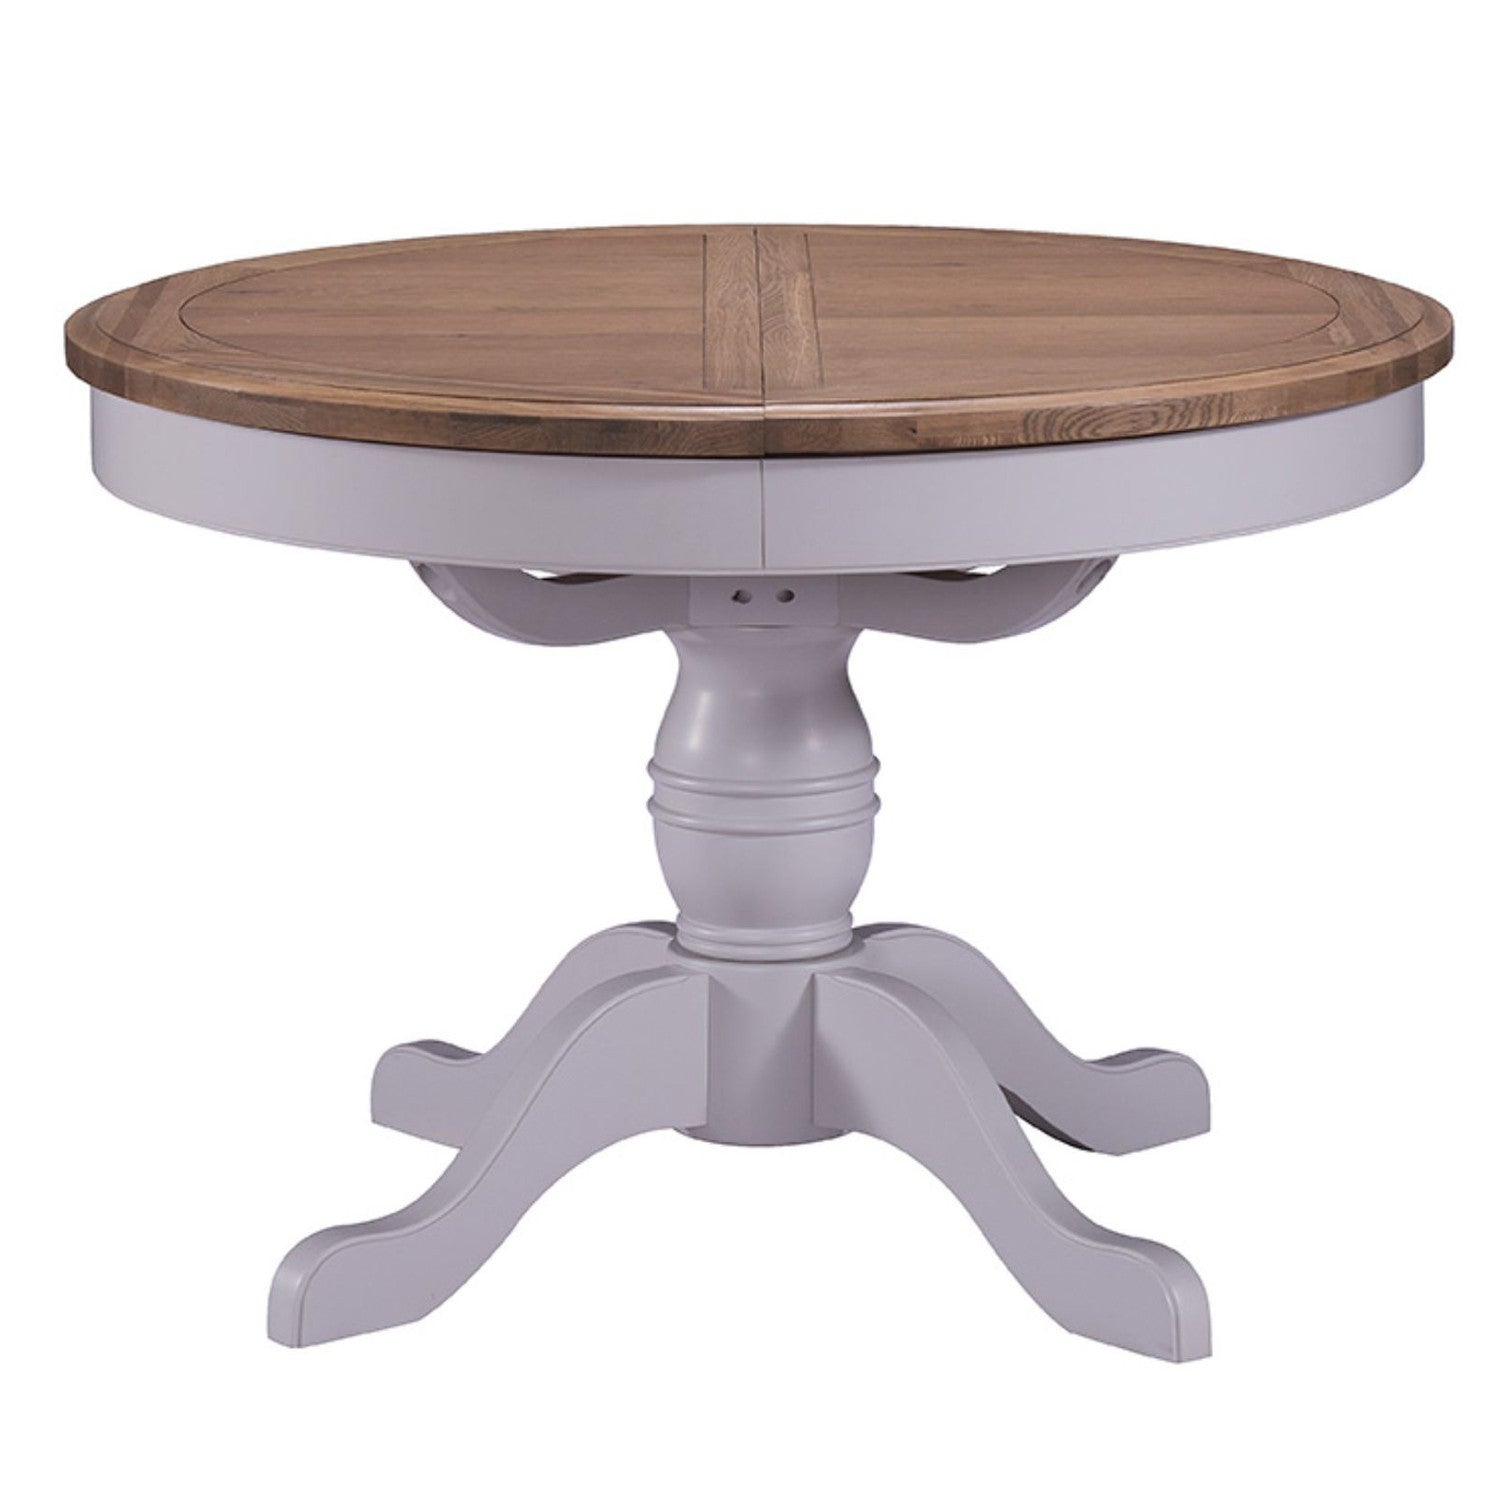 Georgia grey painted and oak dining table round extending pedestal georgia furniture co - Round extending dining table ...